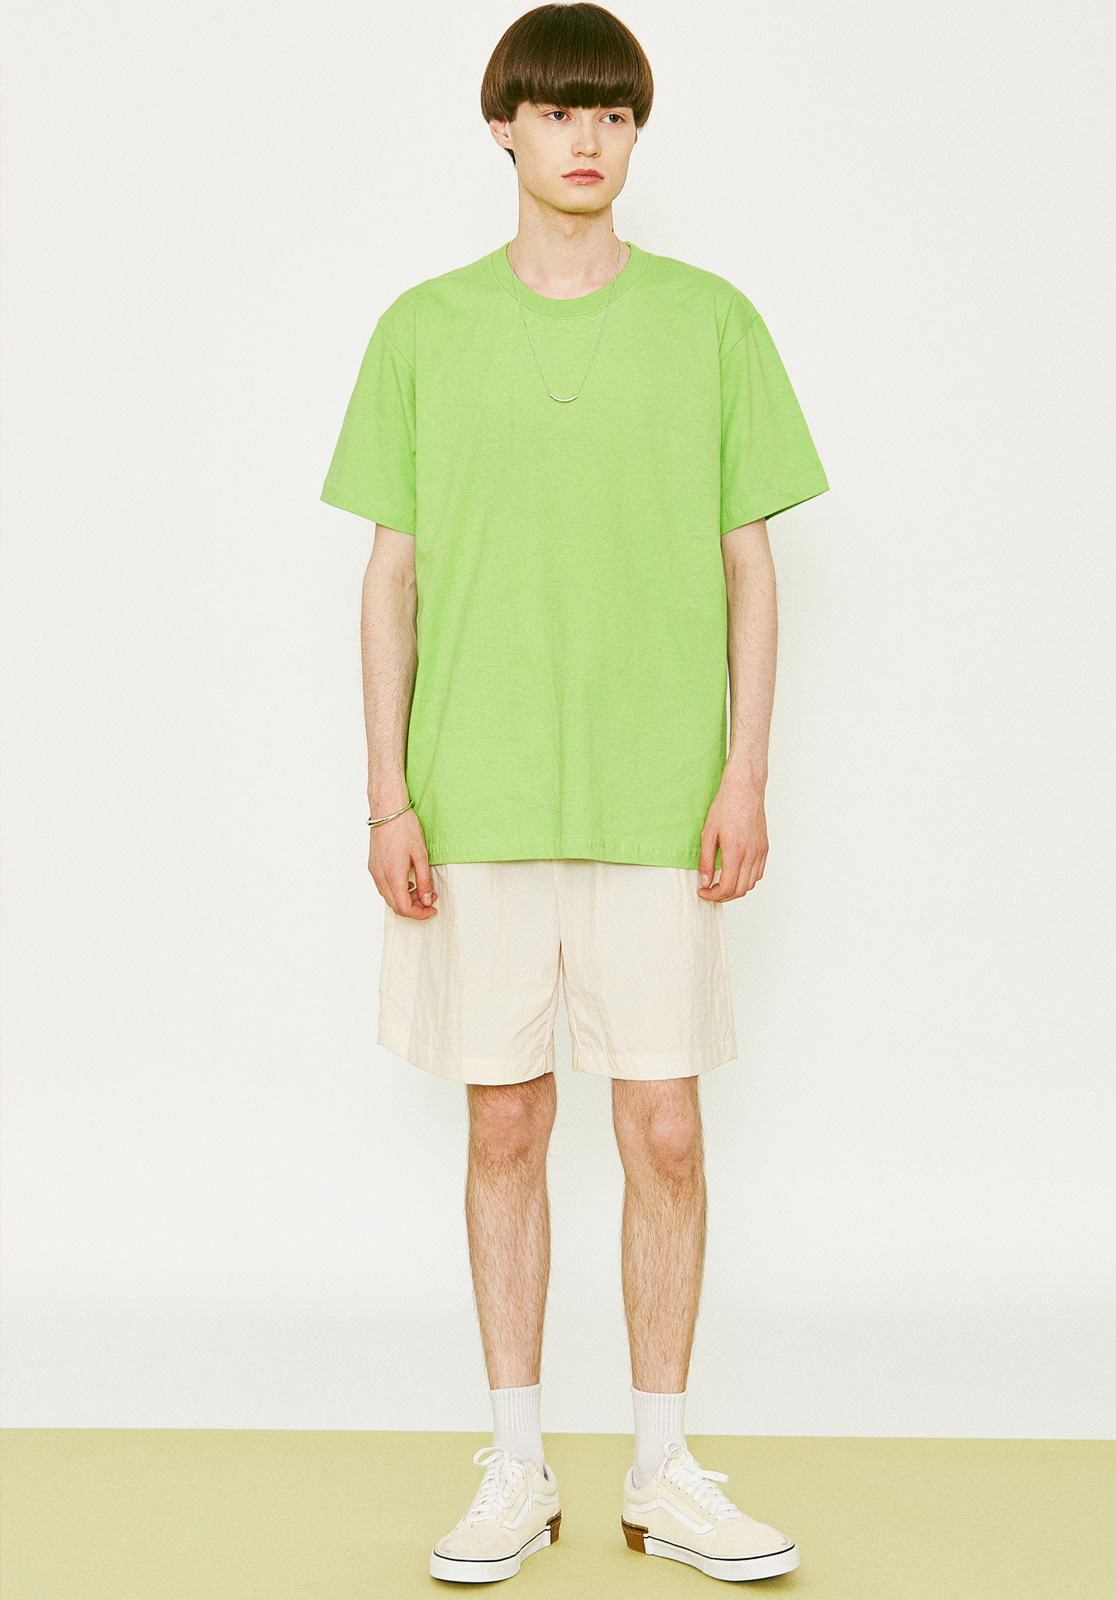 V367 BASIC OVER FIT HALF-TEE YELLOWGREEN